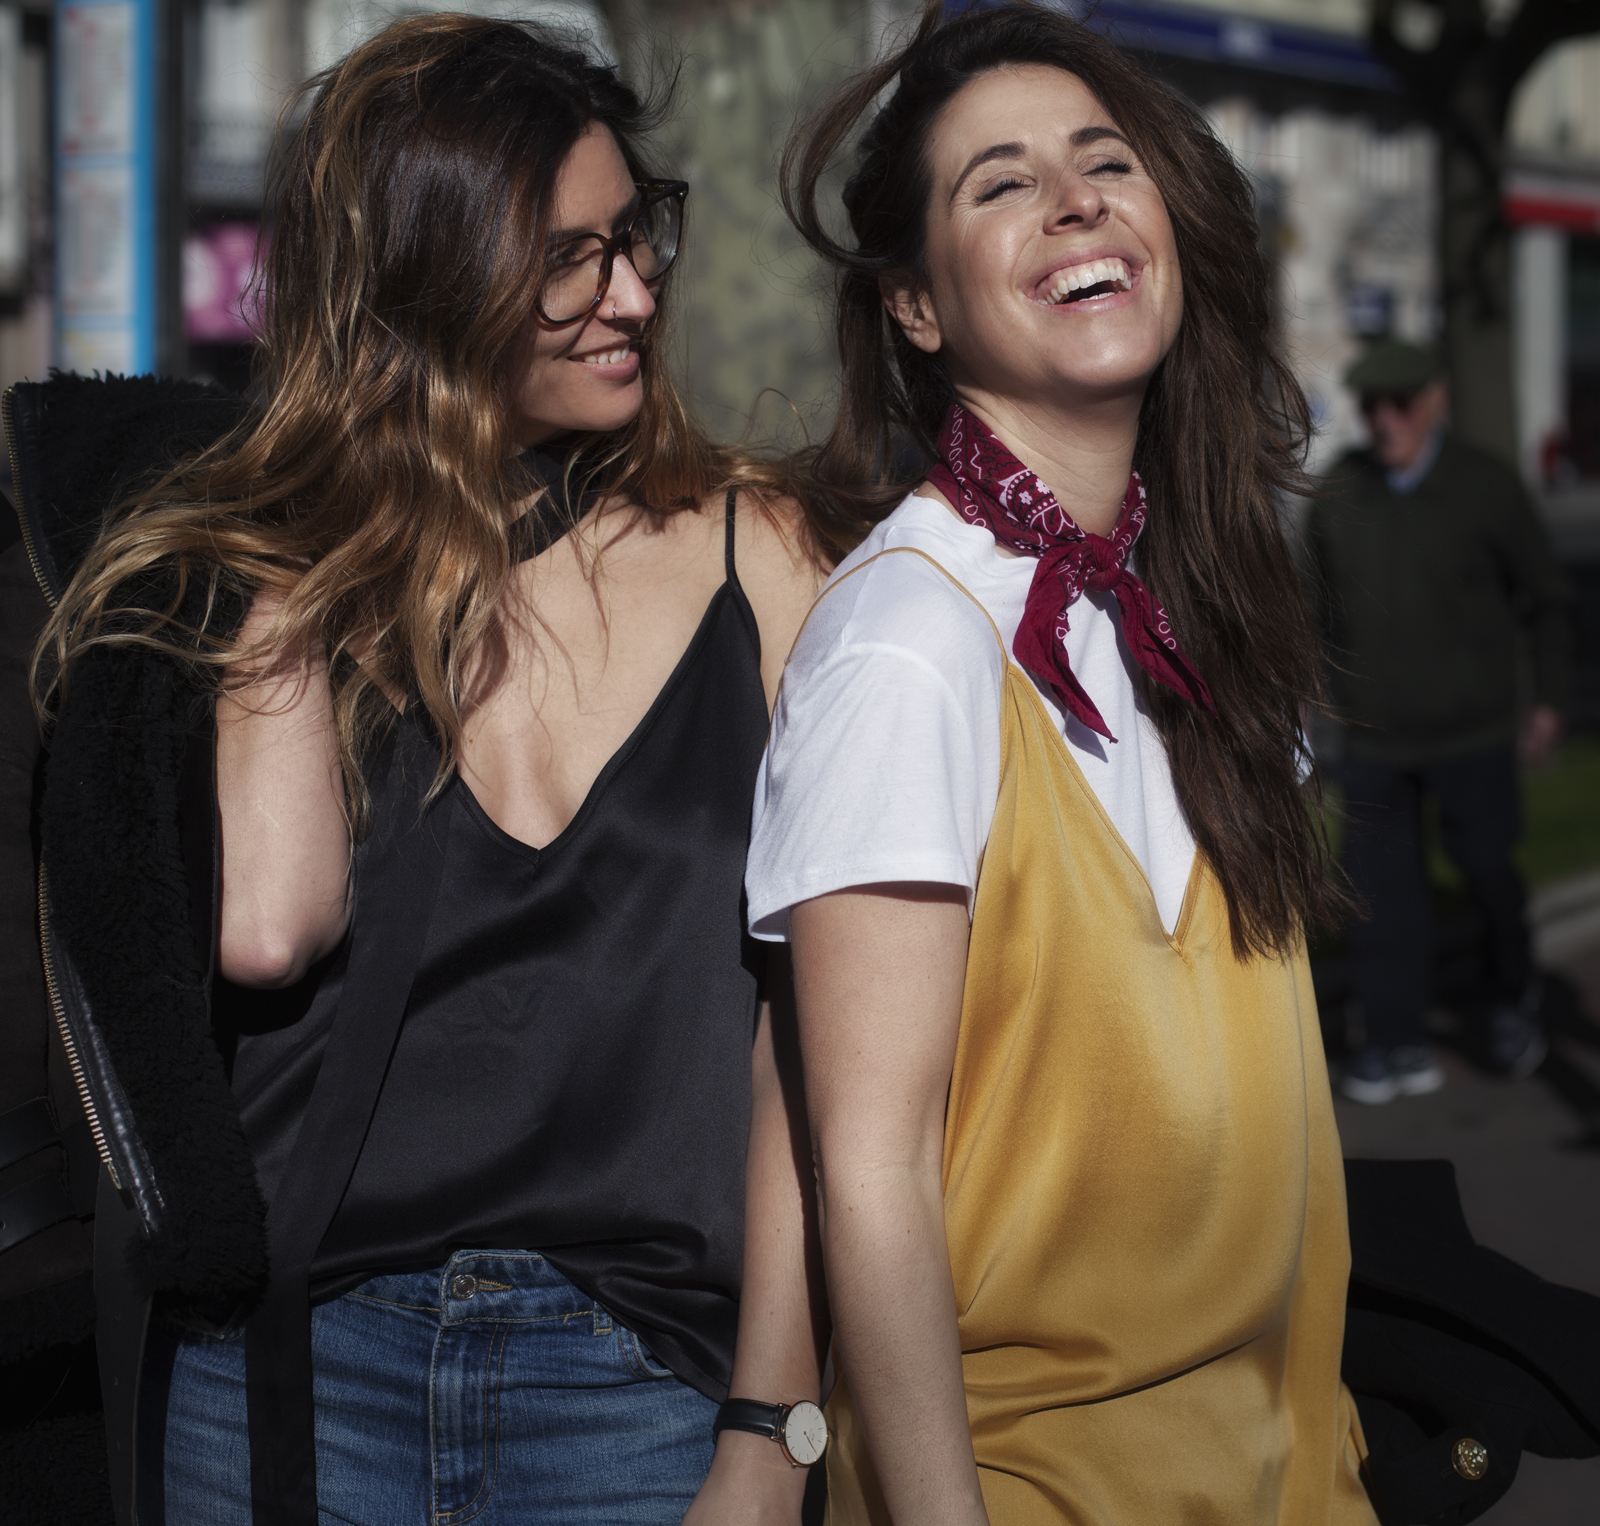 you and me-smile-streetstyle-fashion-street-moda en la calle-silk-dress-coruña-moda gallega-descalzaporelparque